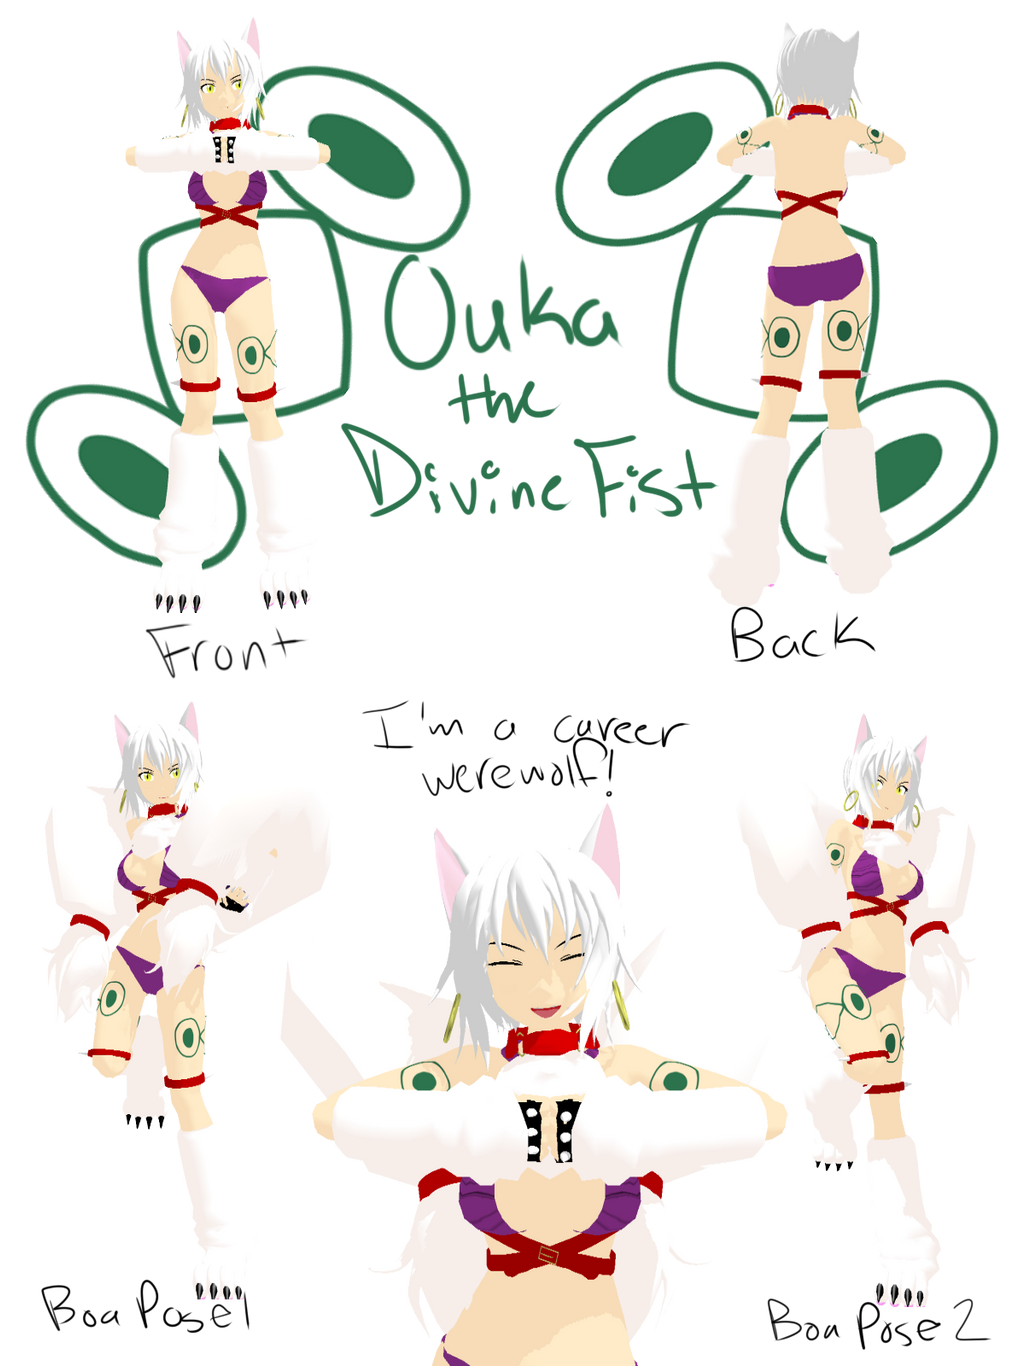 divine fist ouka